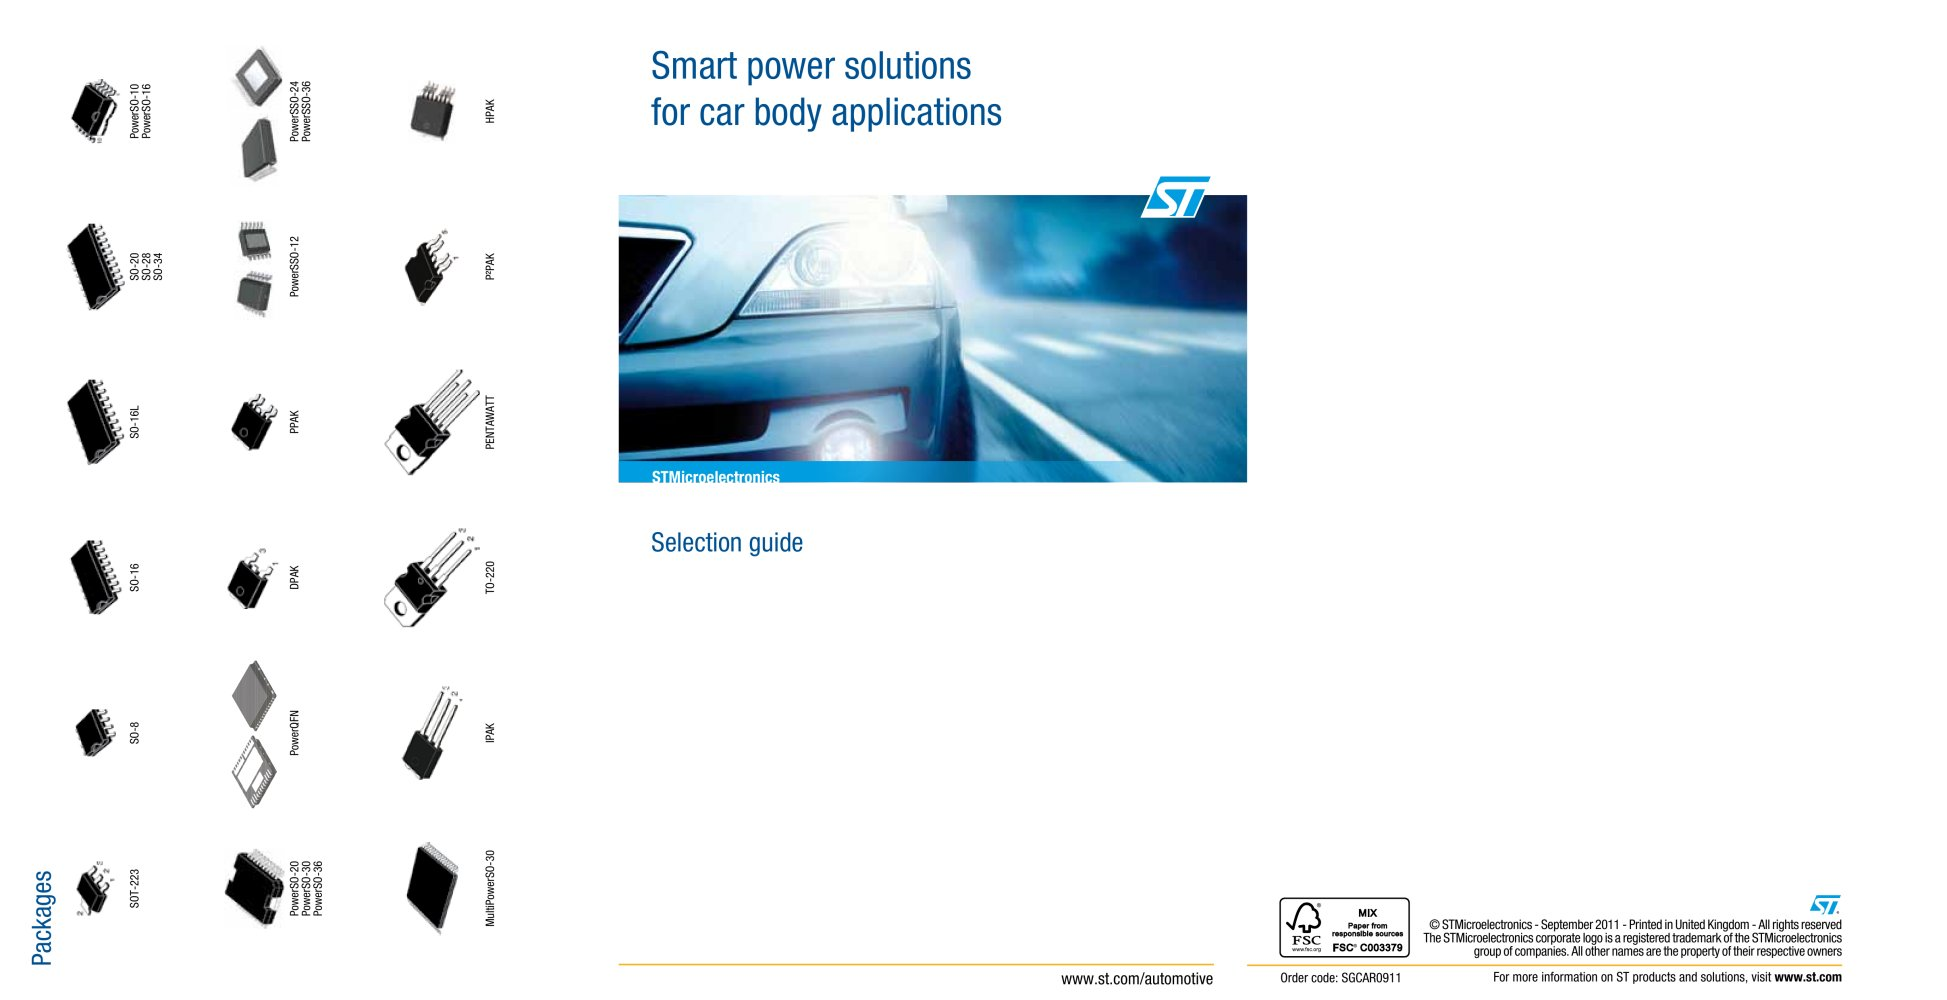 New Digital Power Amplifiers For Car Audio From Stmicroelectronics Smart Solutions Body Applications 1 18 Pages